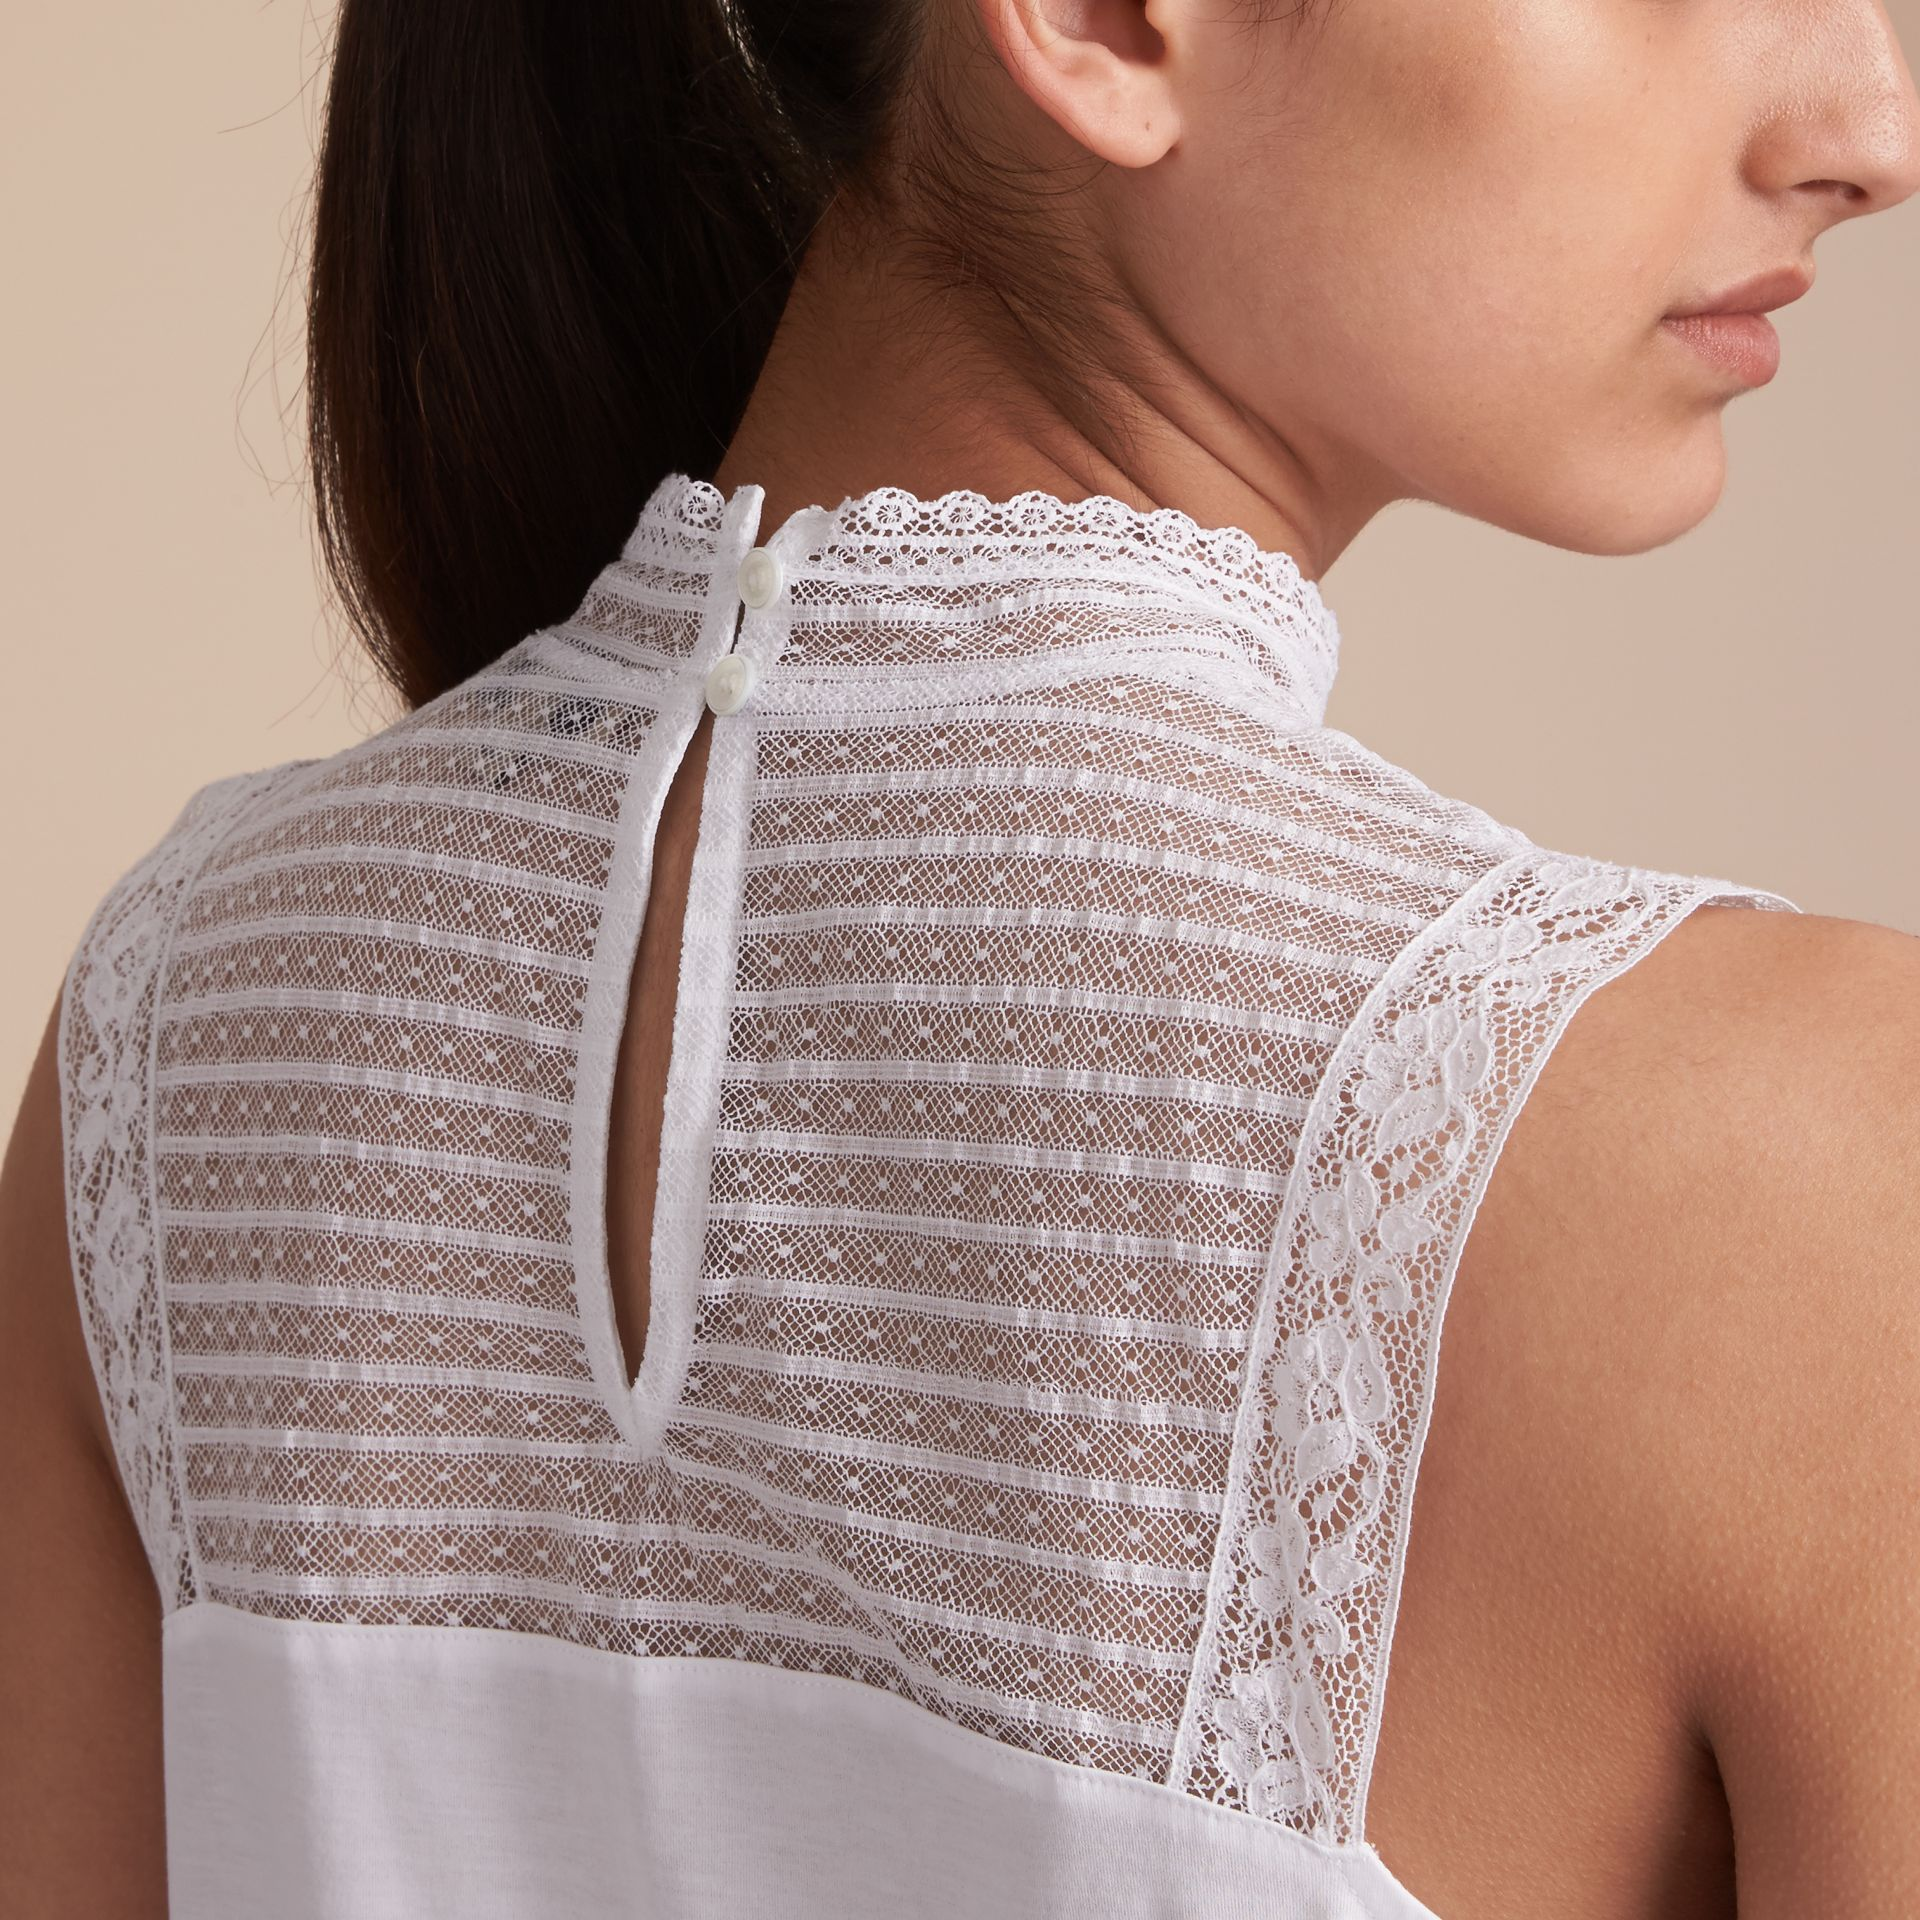 Sleeveless Lace Panel Cotton Top in White - Women | Burberry Canada - gallery image 6